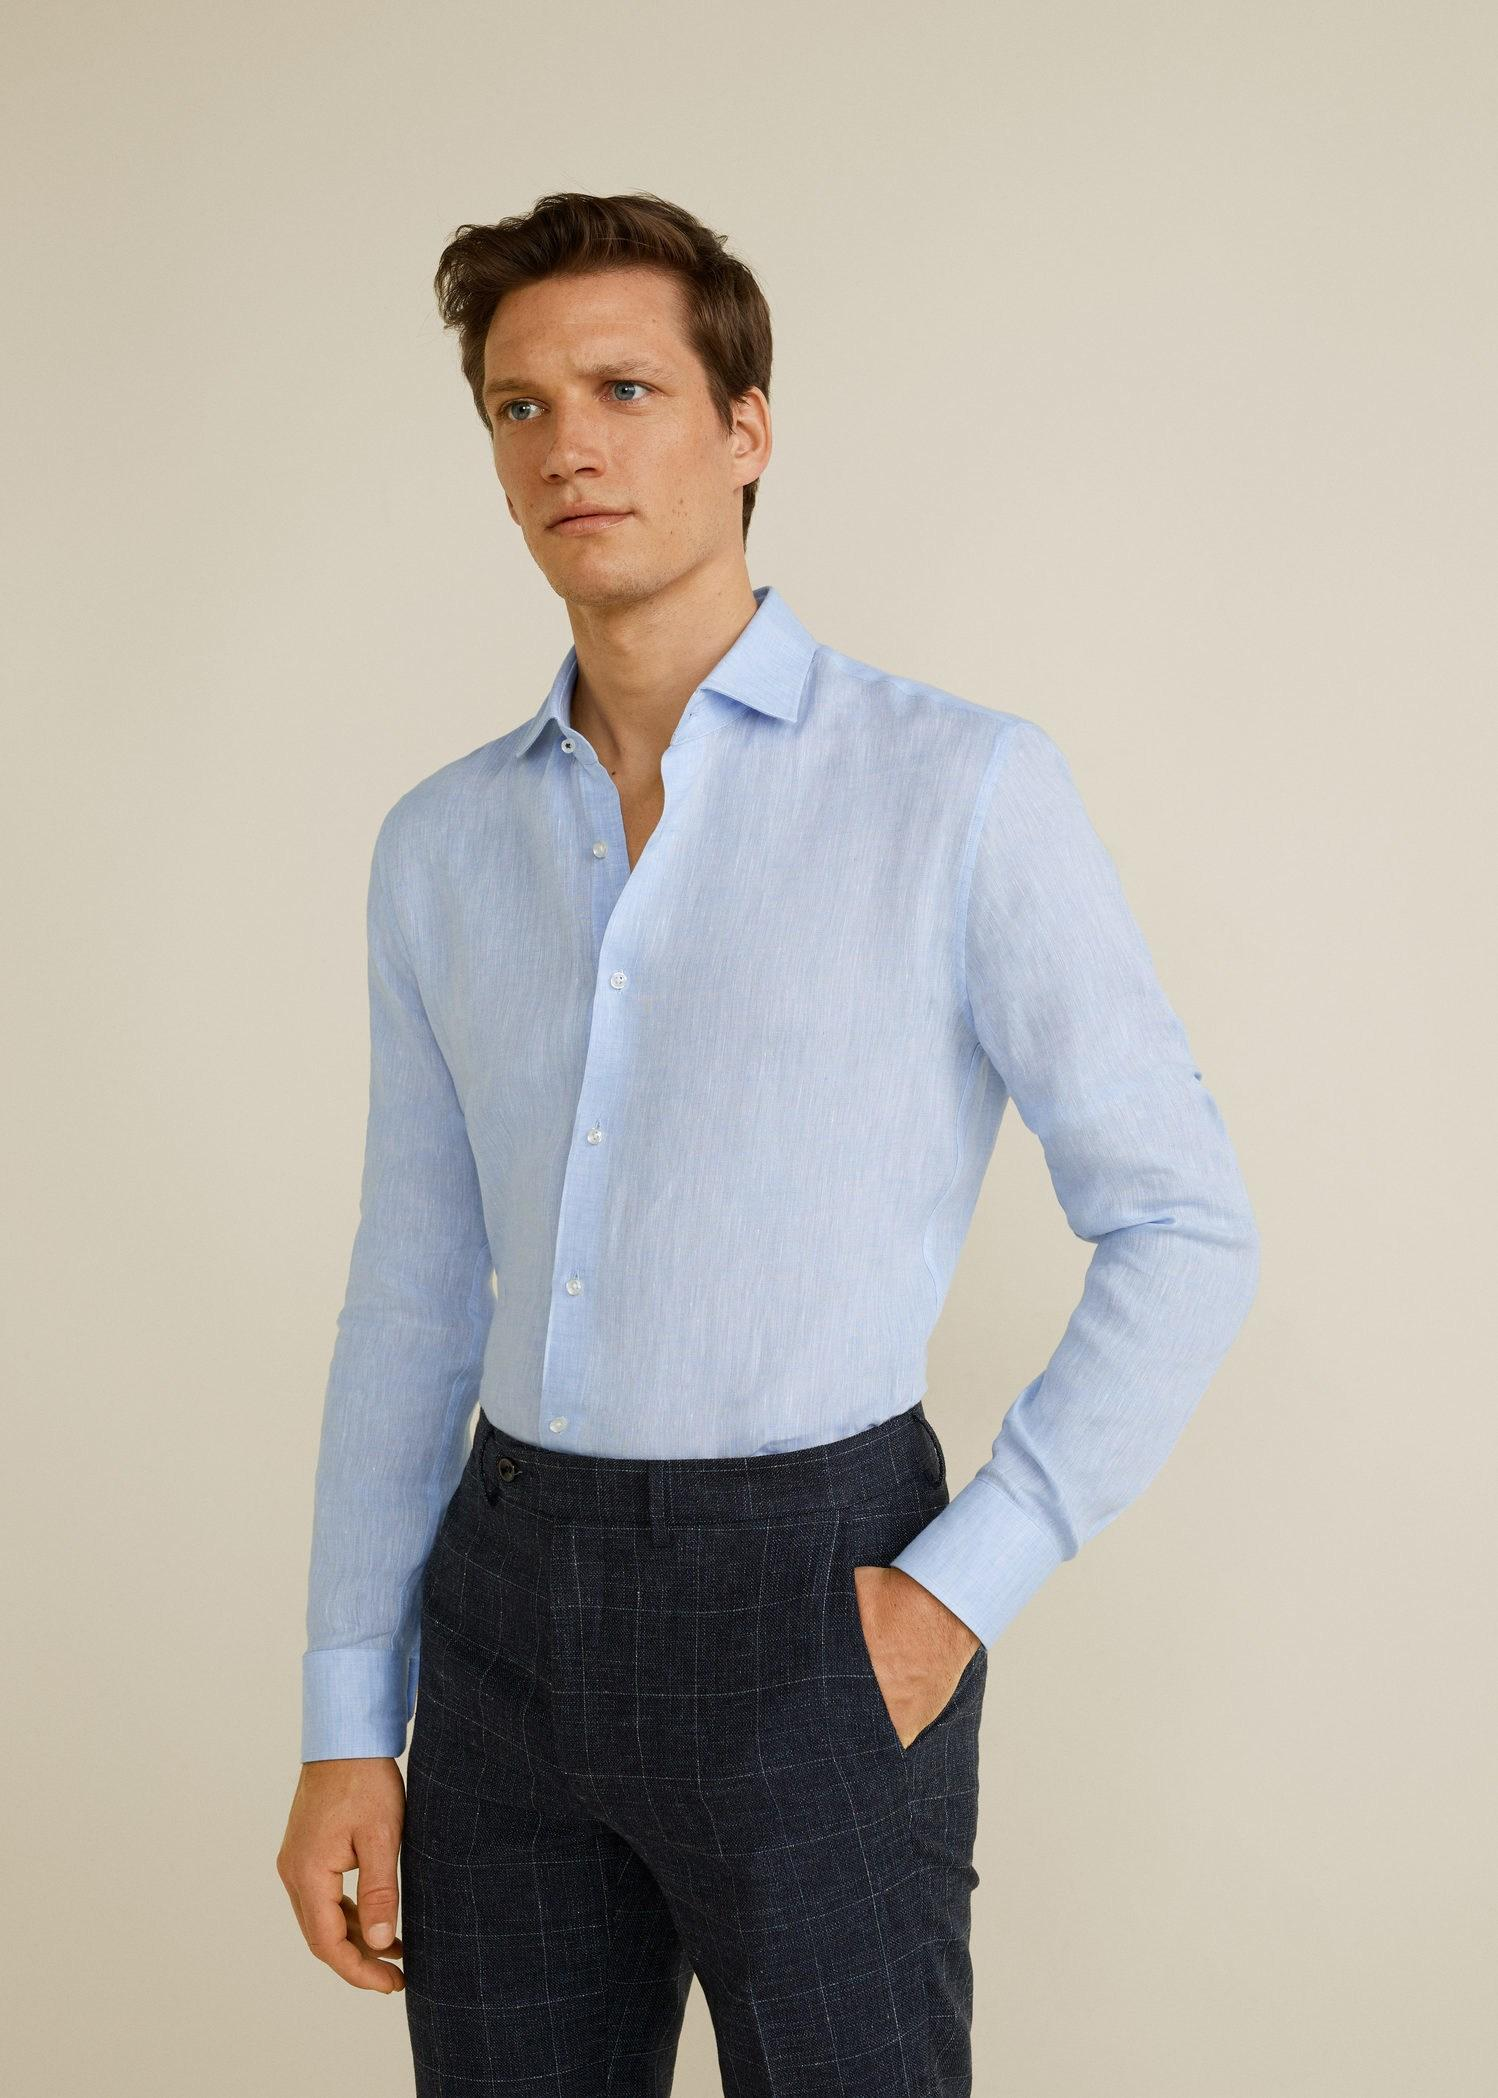 6efa65f73a96 Mango Slim-fit Tailored Linen Shirt in Blue for Men - Lyst